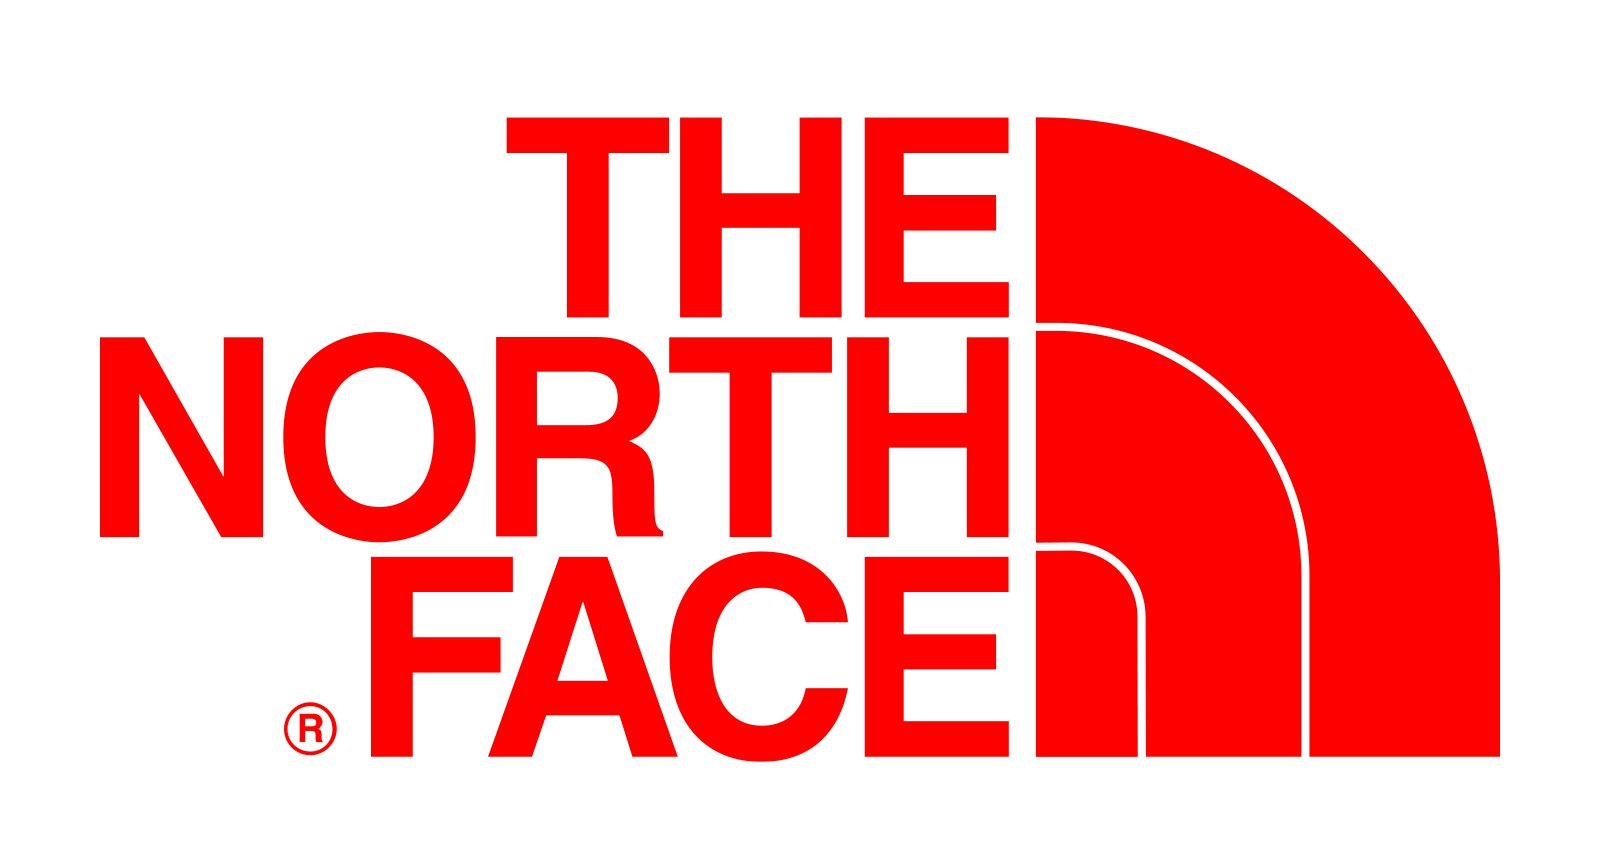 North Face Logo North Face Symbol Meaning History And Evolution